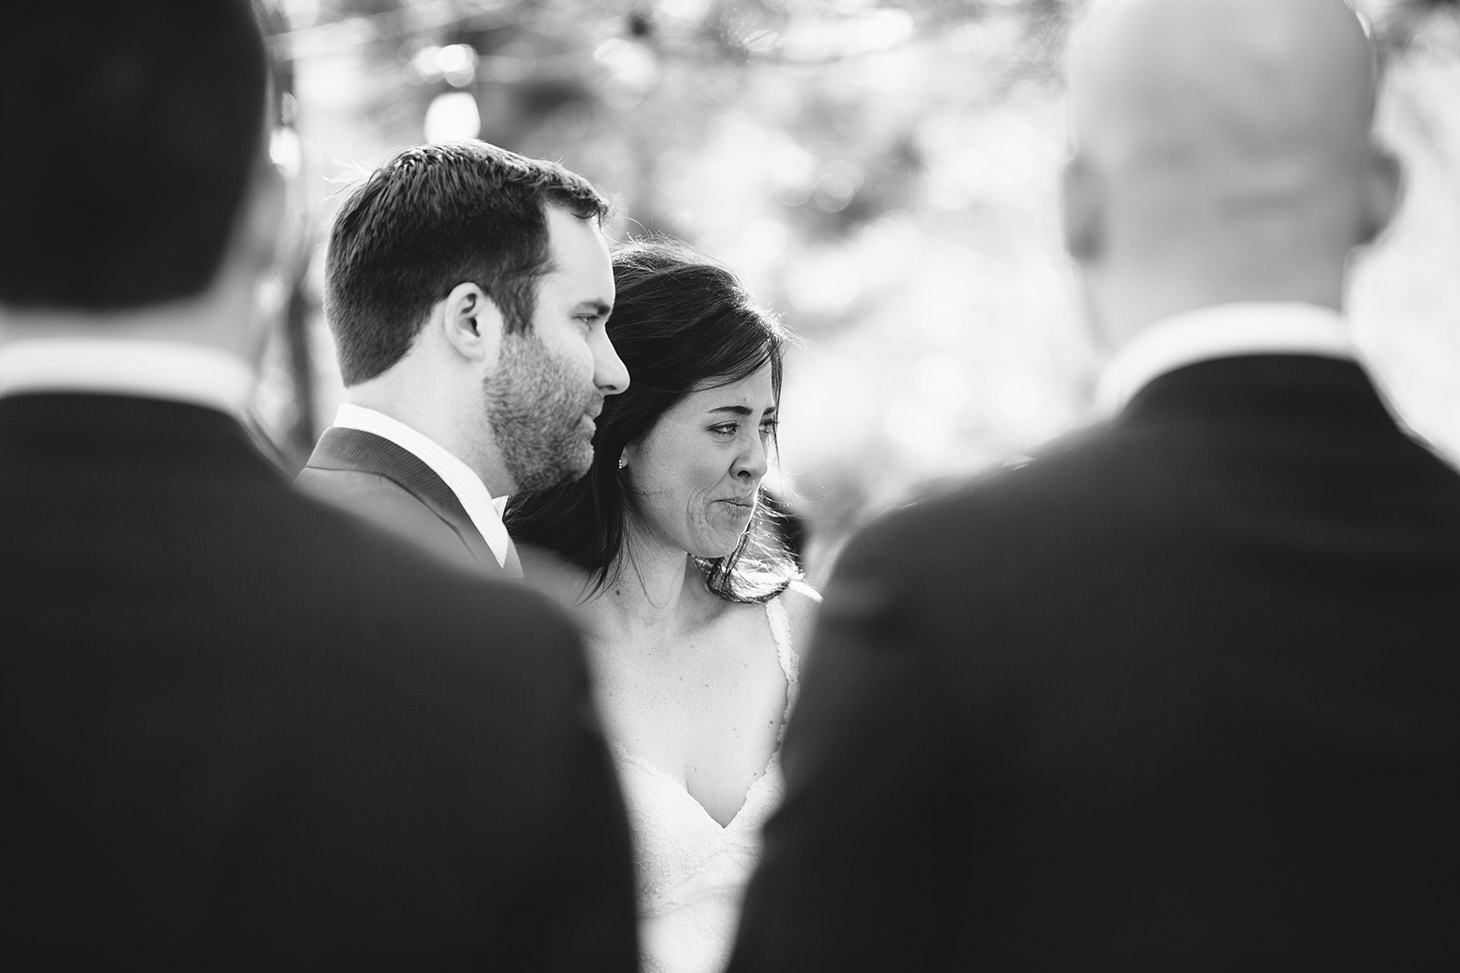 Megan-Newton-Photography-Best-Wedding-Photos-2015-288